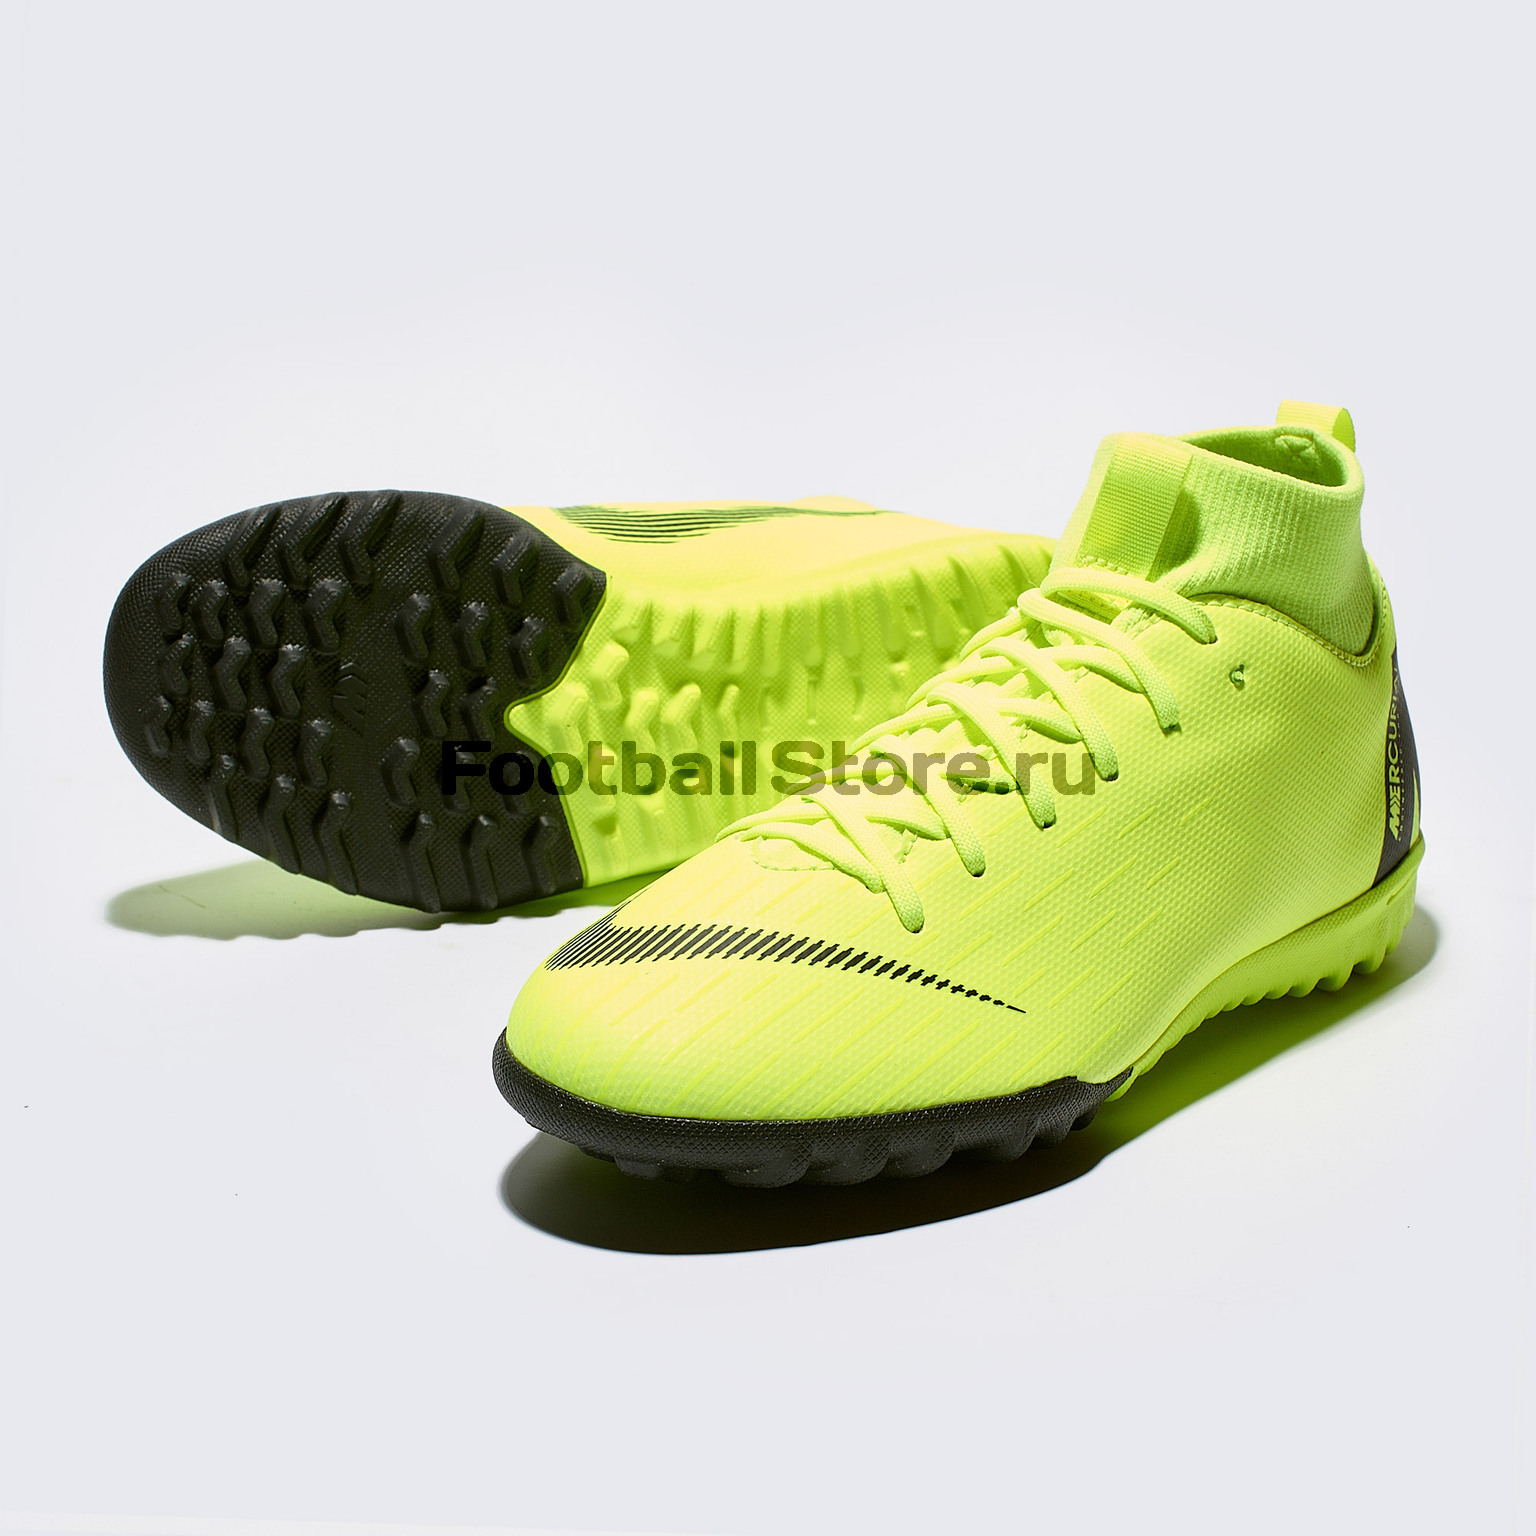 Шиповки детские Nike SuperFly X Academy GS TF AH7344-701 бутсы nike шиповки nike jr tiempox legend vi tf 819191 018